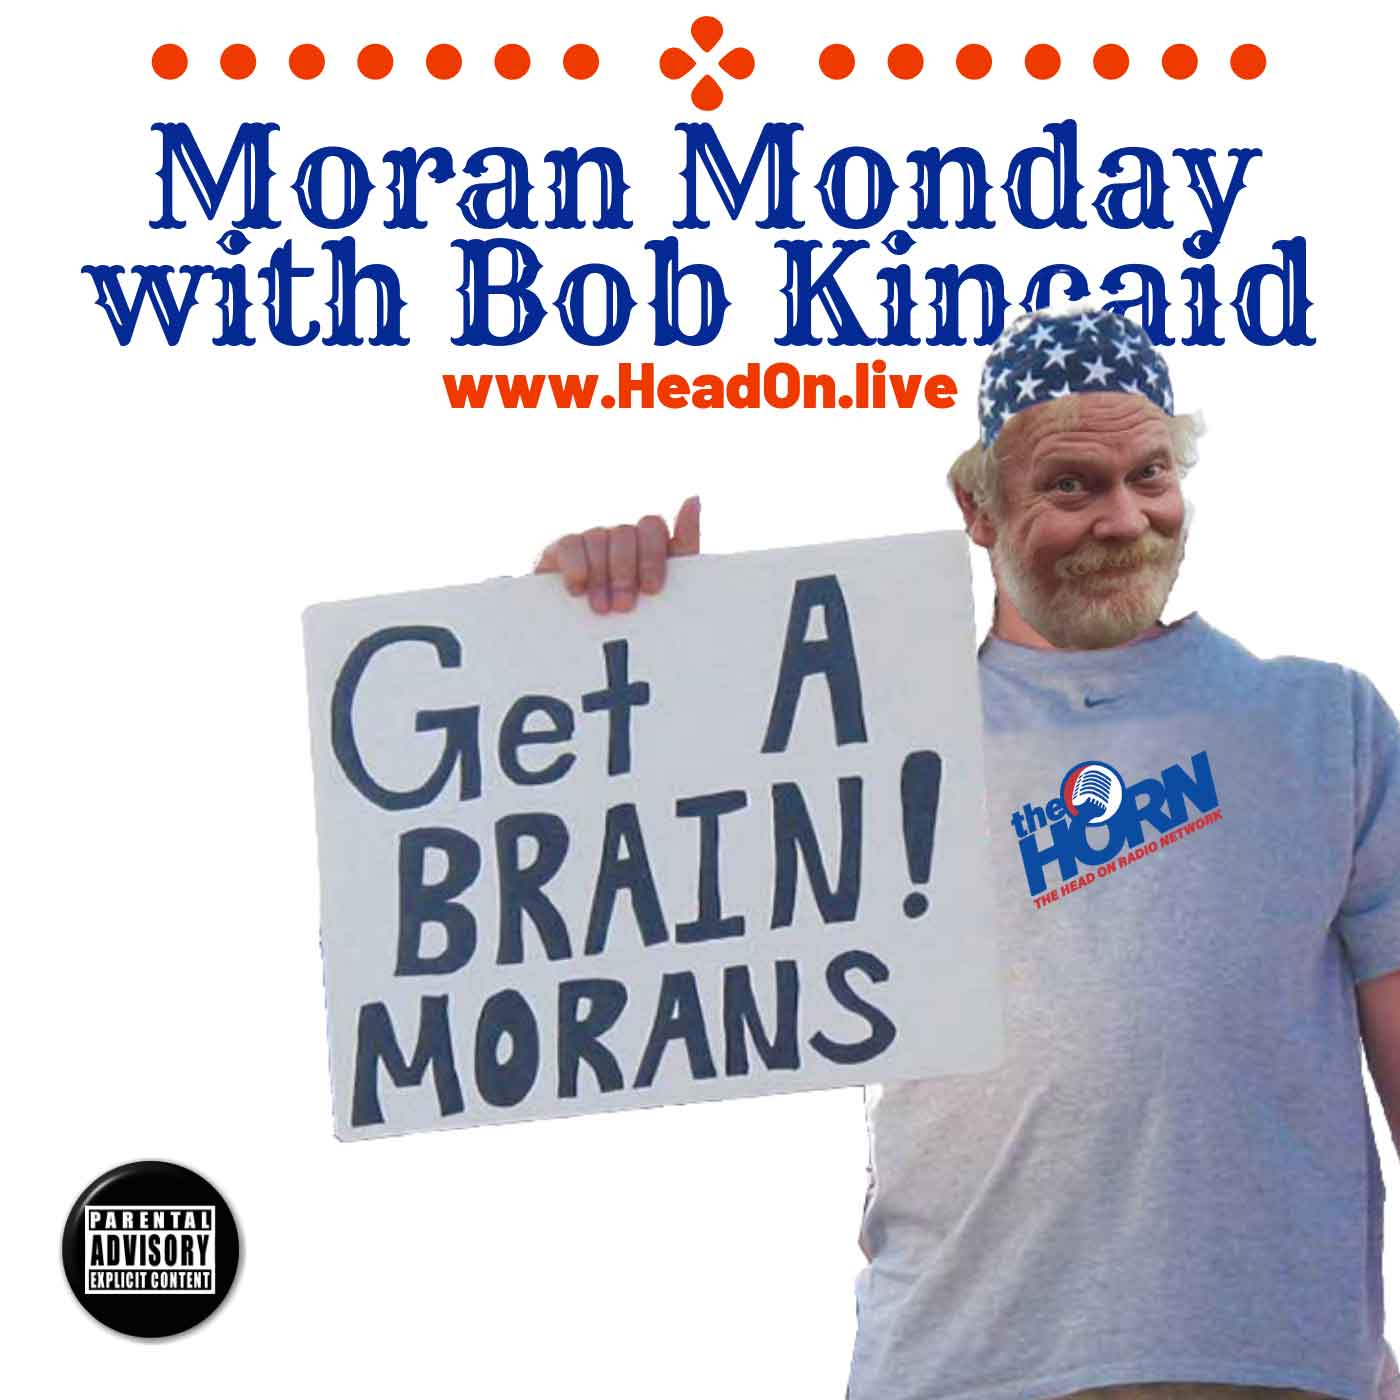 Morona Monday, Head-ON With Bob Kincaid, 1 June 2020